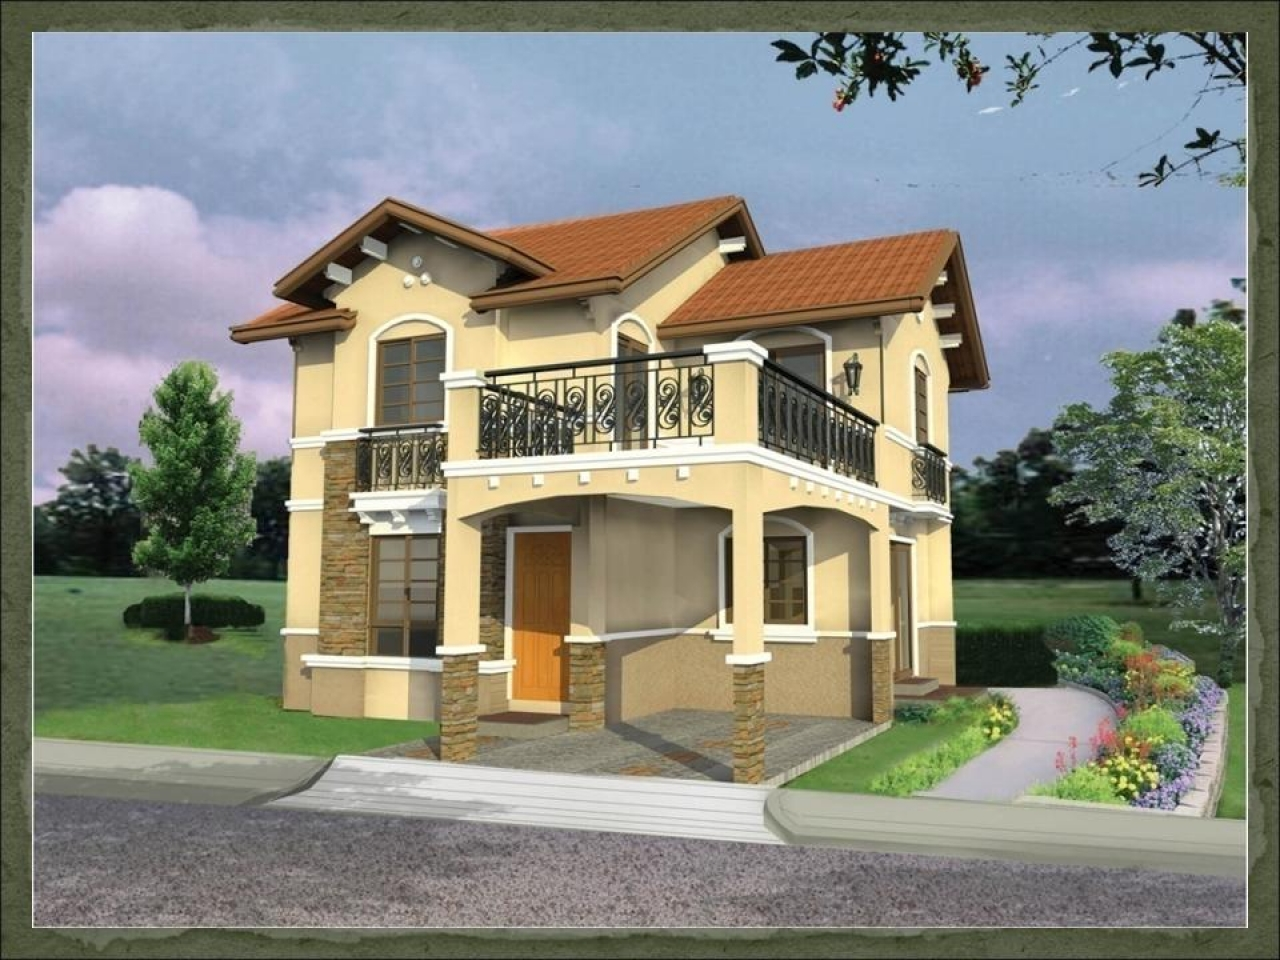 modern house plans designs philippines affordable modern house plans lrg 8329698e01066bb4 - Download Small Modern Beach House Floor Plans Pics